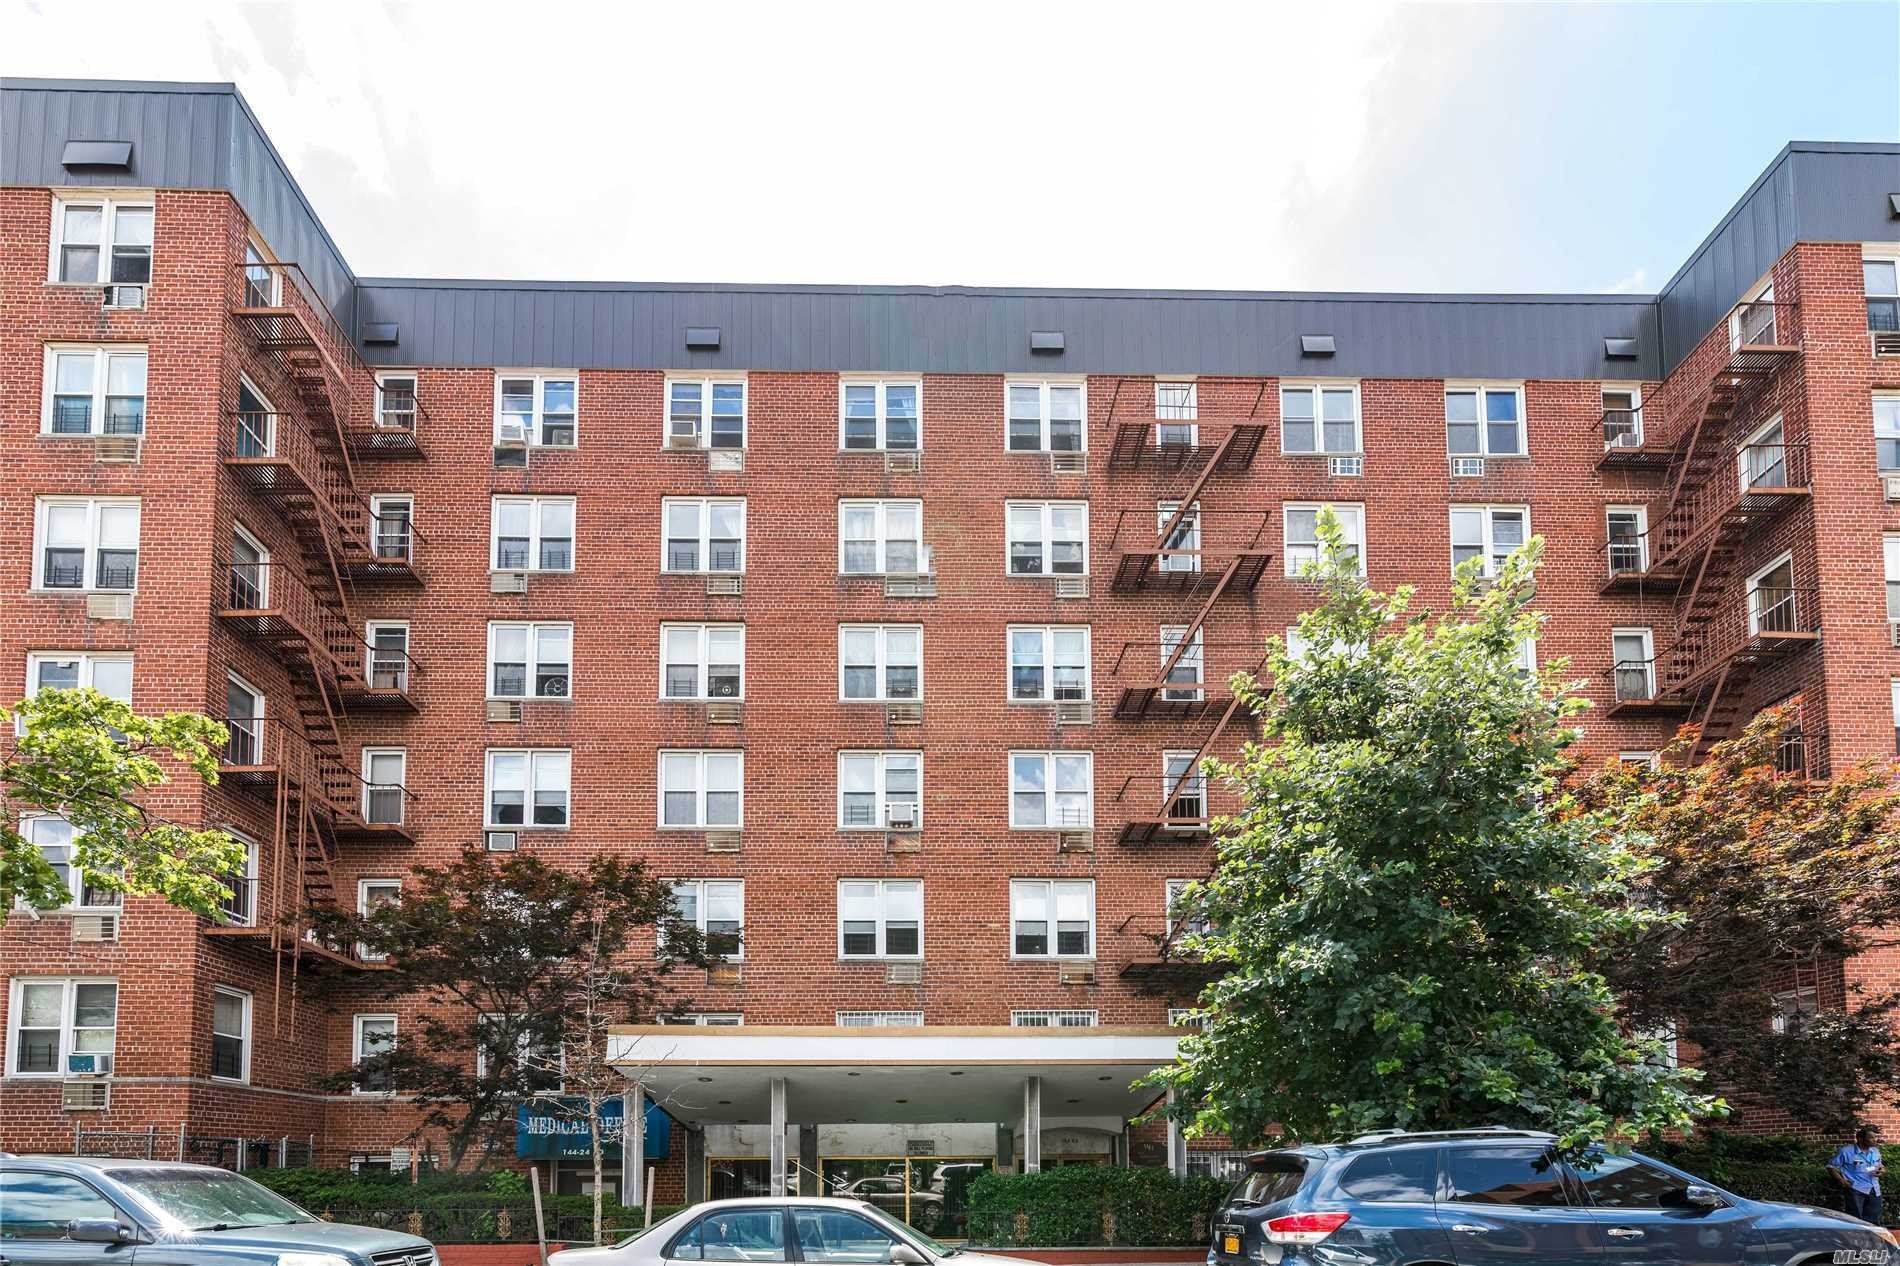 On 1st Fl Of This Elevator-Bldg. 2Br/1Ba Coop N The Heart Of Flushing. Living Room Connected To A Spacious Dining Area. Eff Kitchen. 5 Closets/Storage. Laundry Facilities. Garage Space For 1 Car. Great Location!